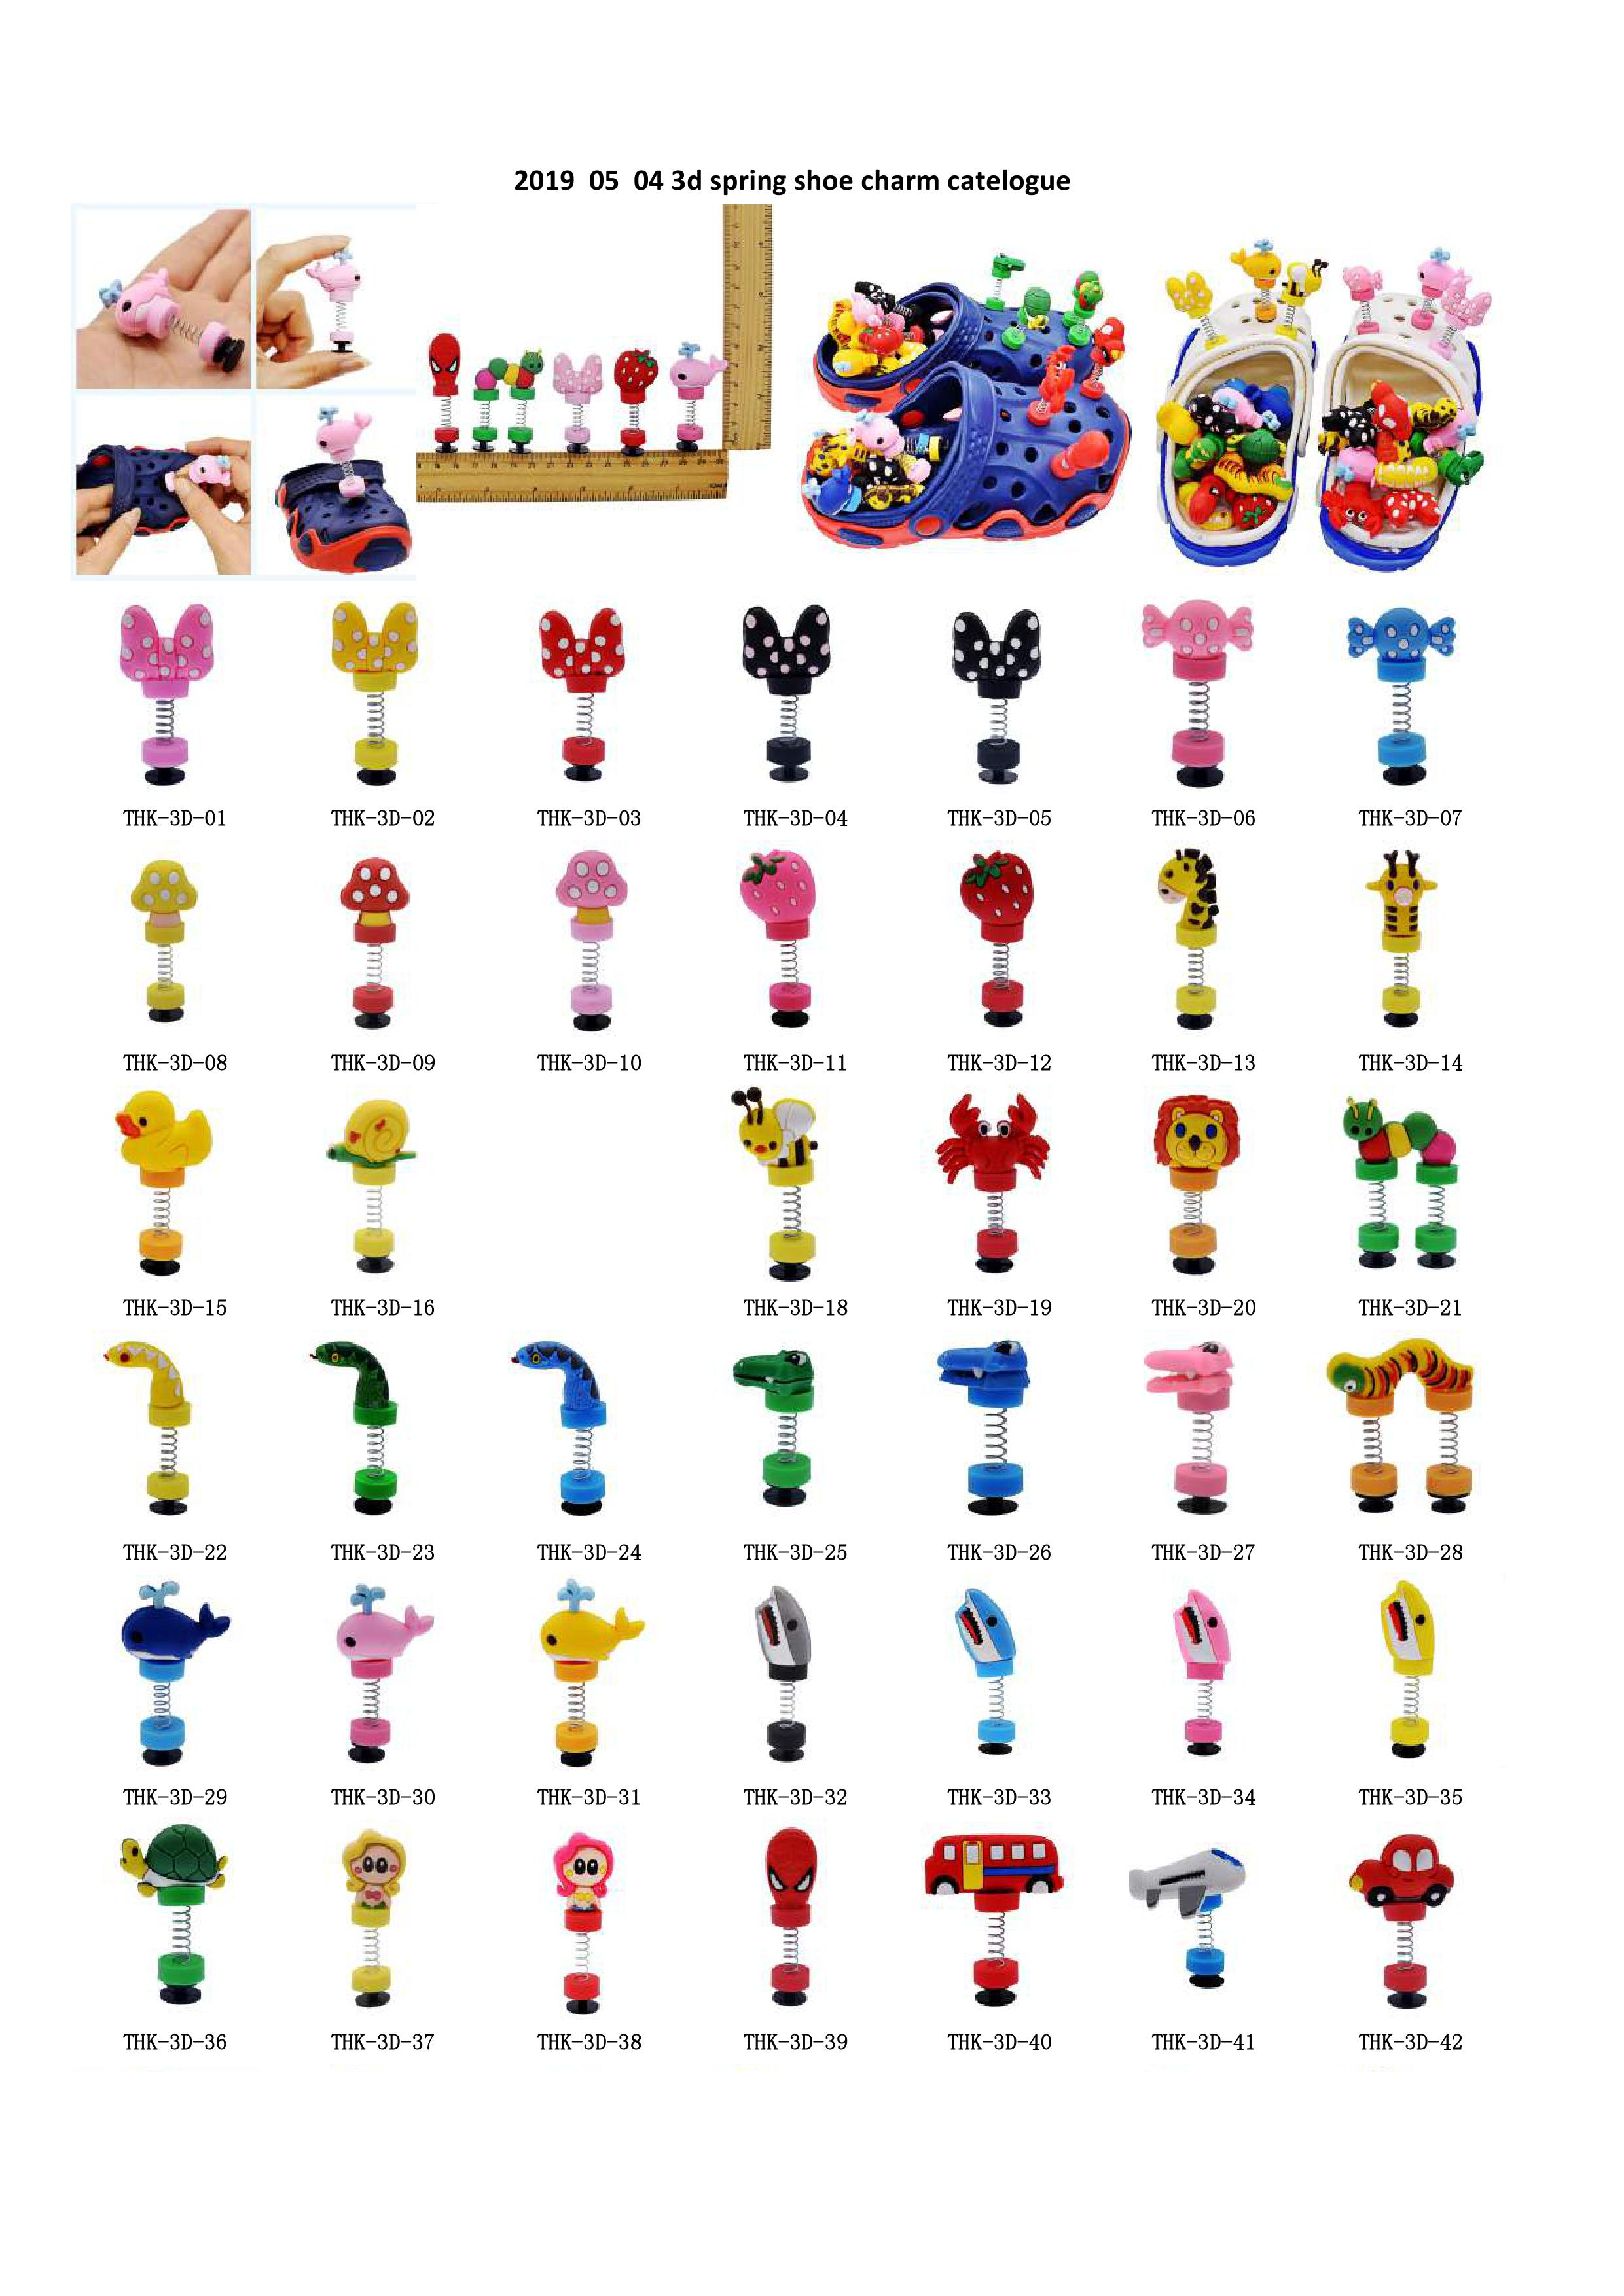 100pcs You Selected 3D Spring Shoe Ornaments Cartoon Animals Cars Bowknots Candy Sandal Accessories Boys Girls Favor Gift